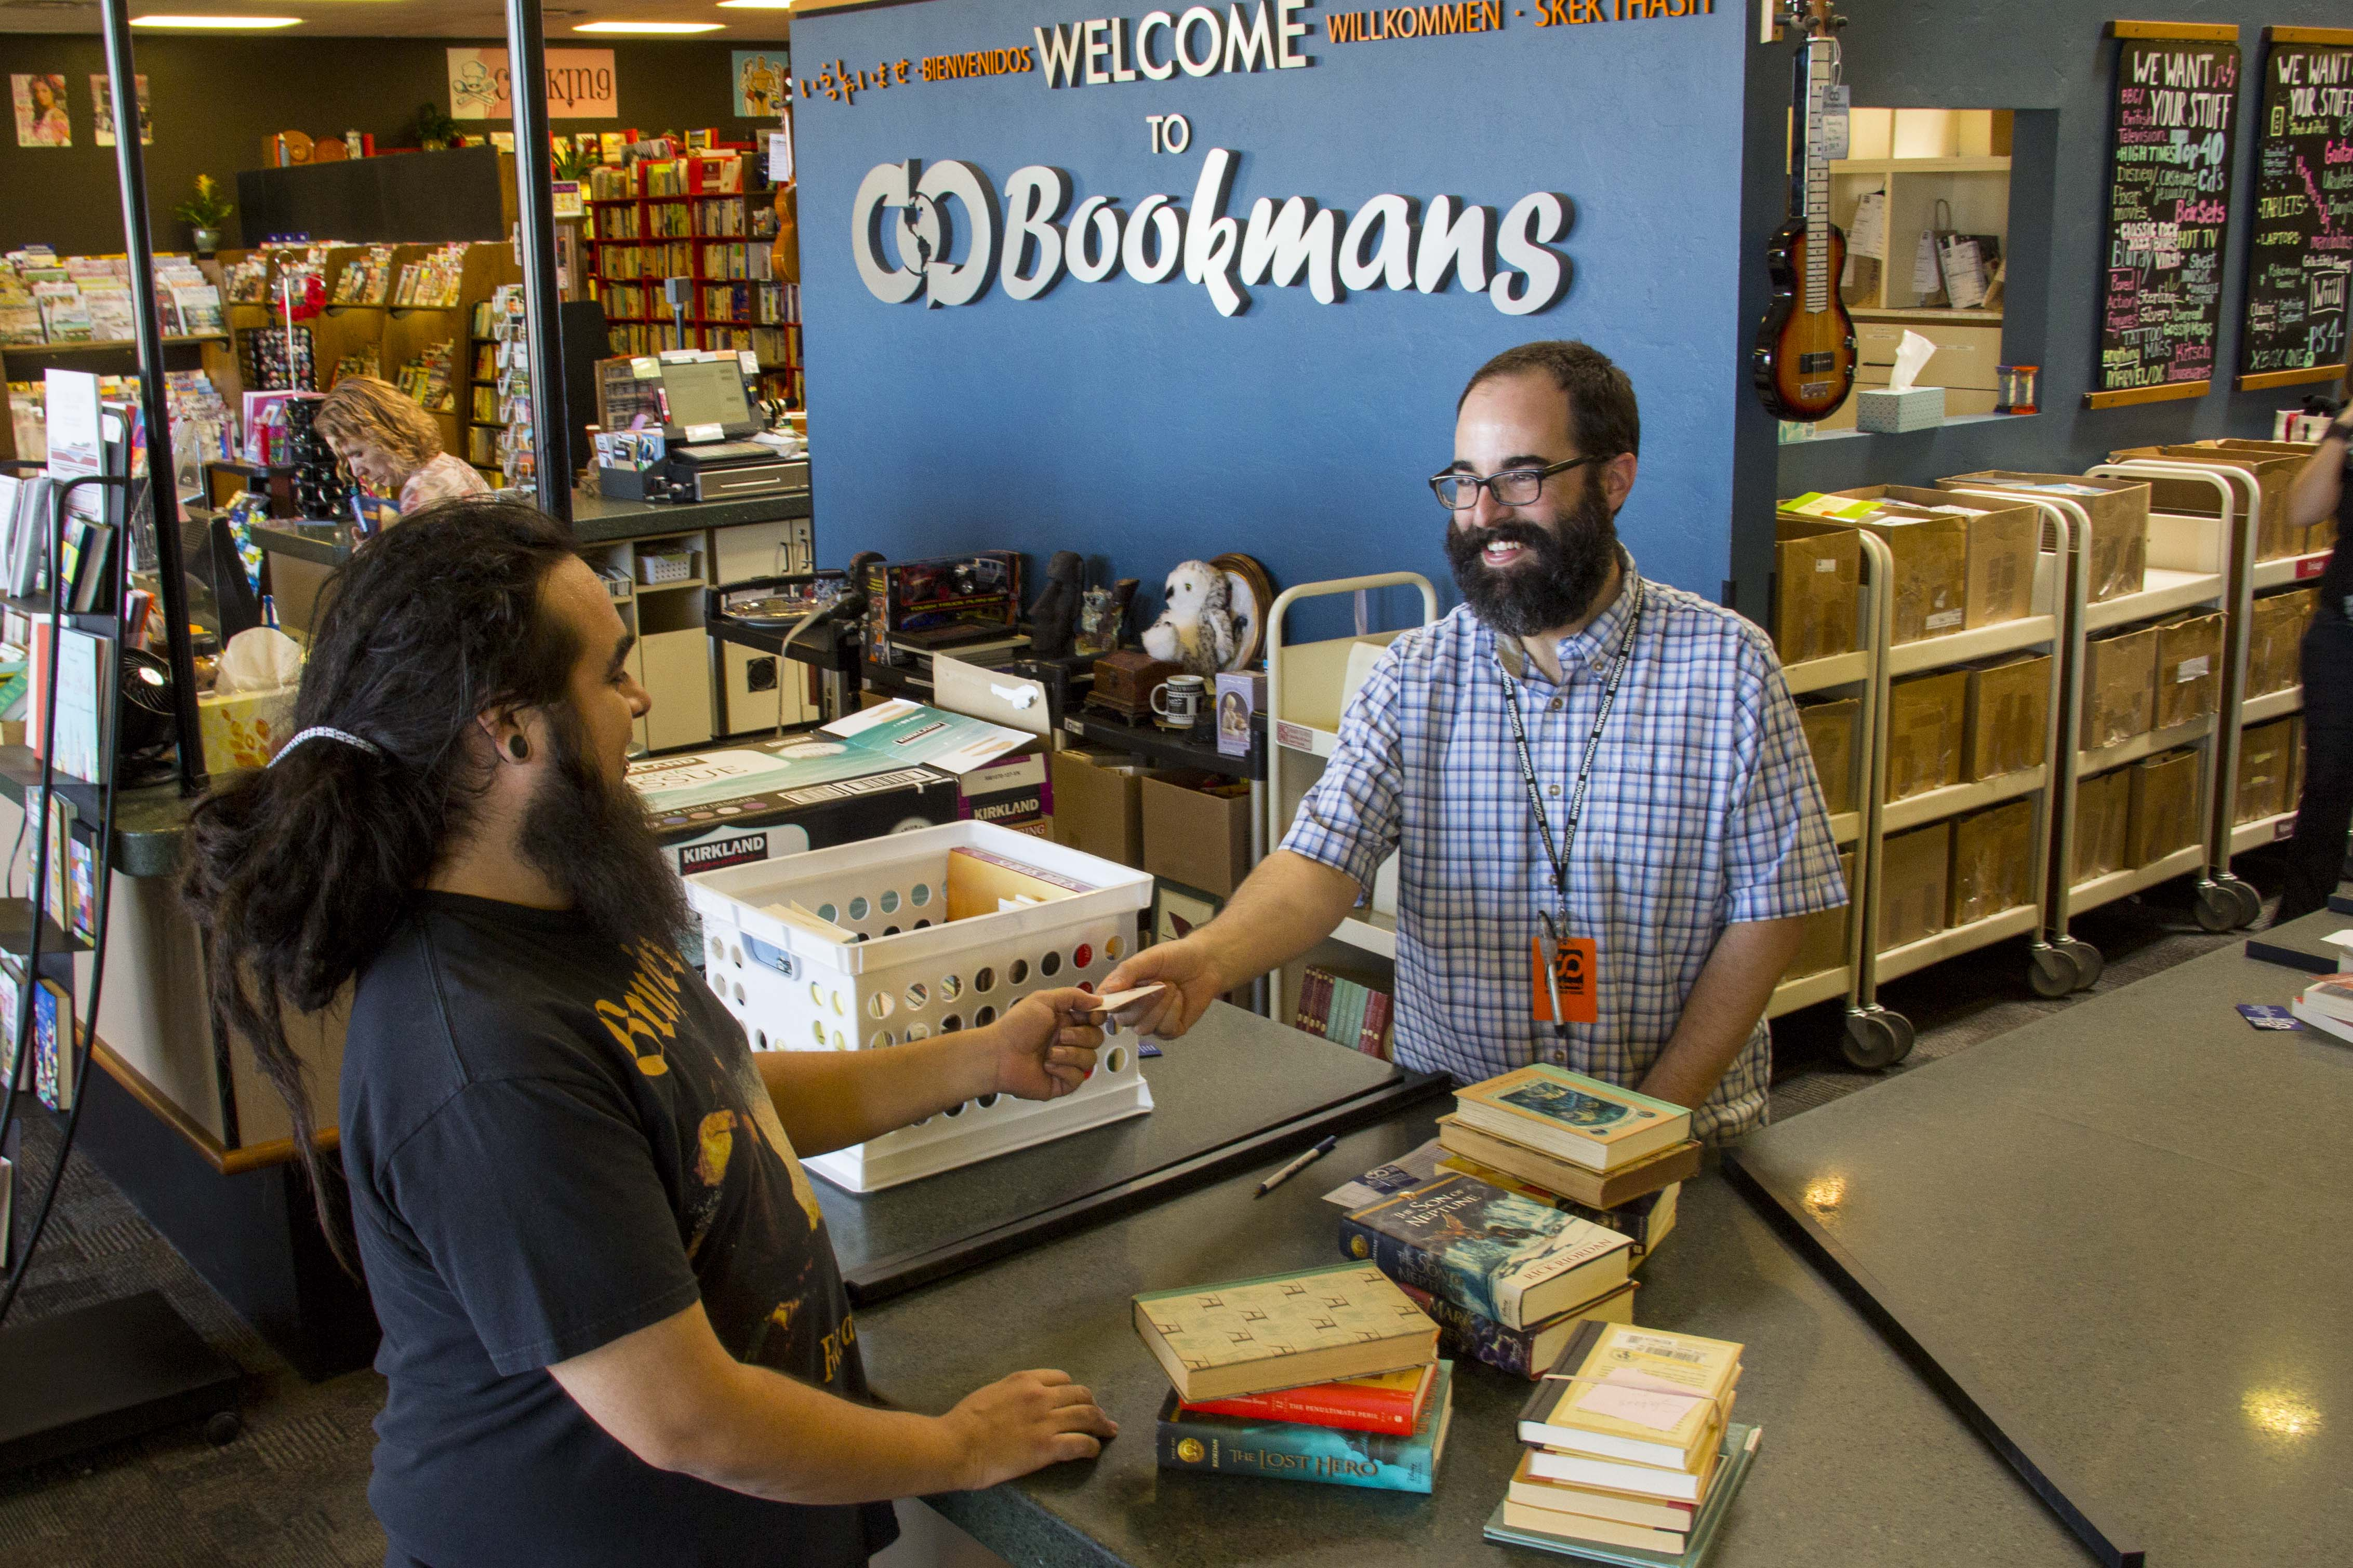 What We Want to Buy | Bookmans Entertainment Exchange